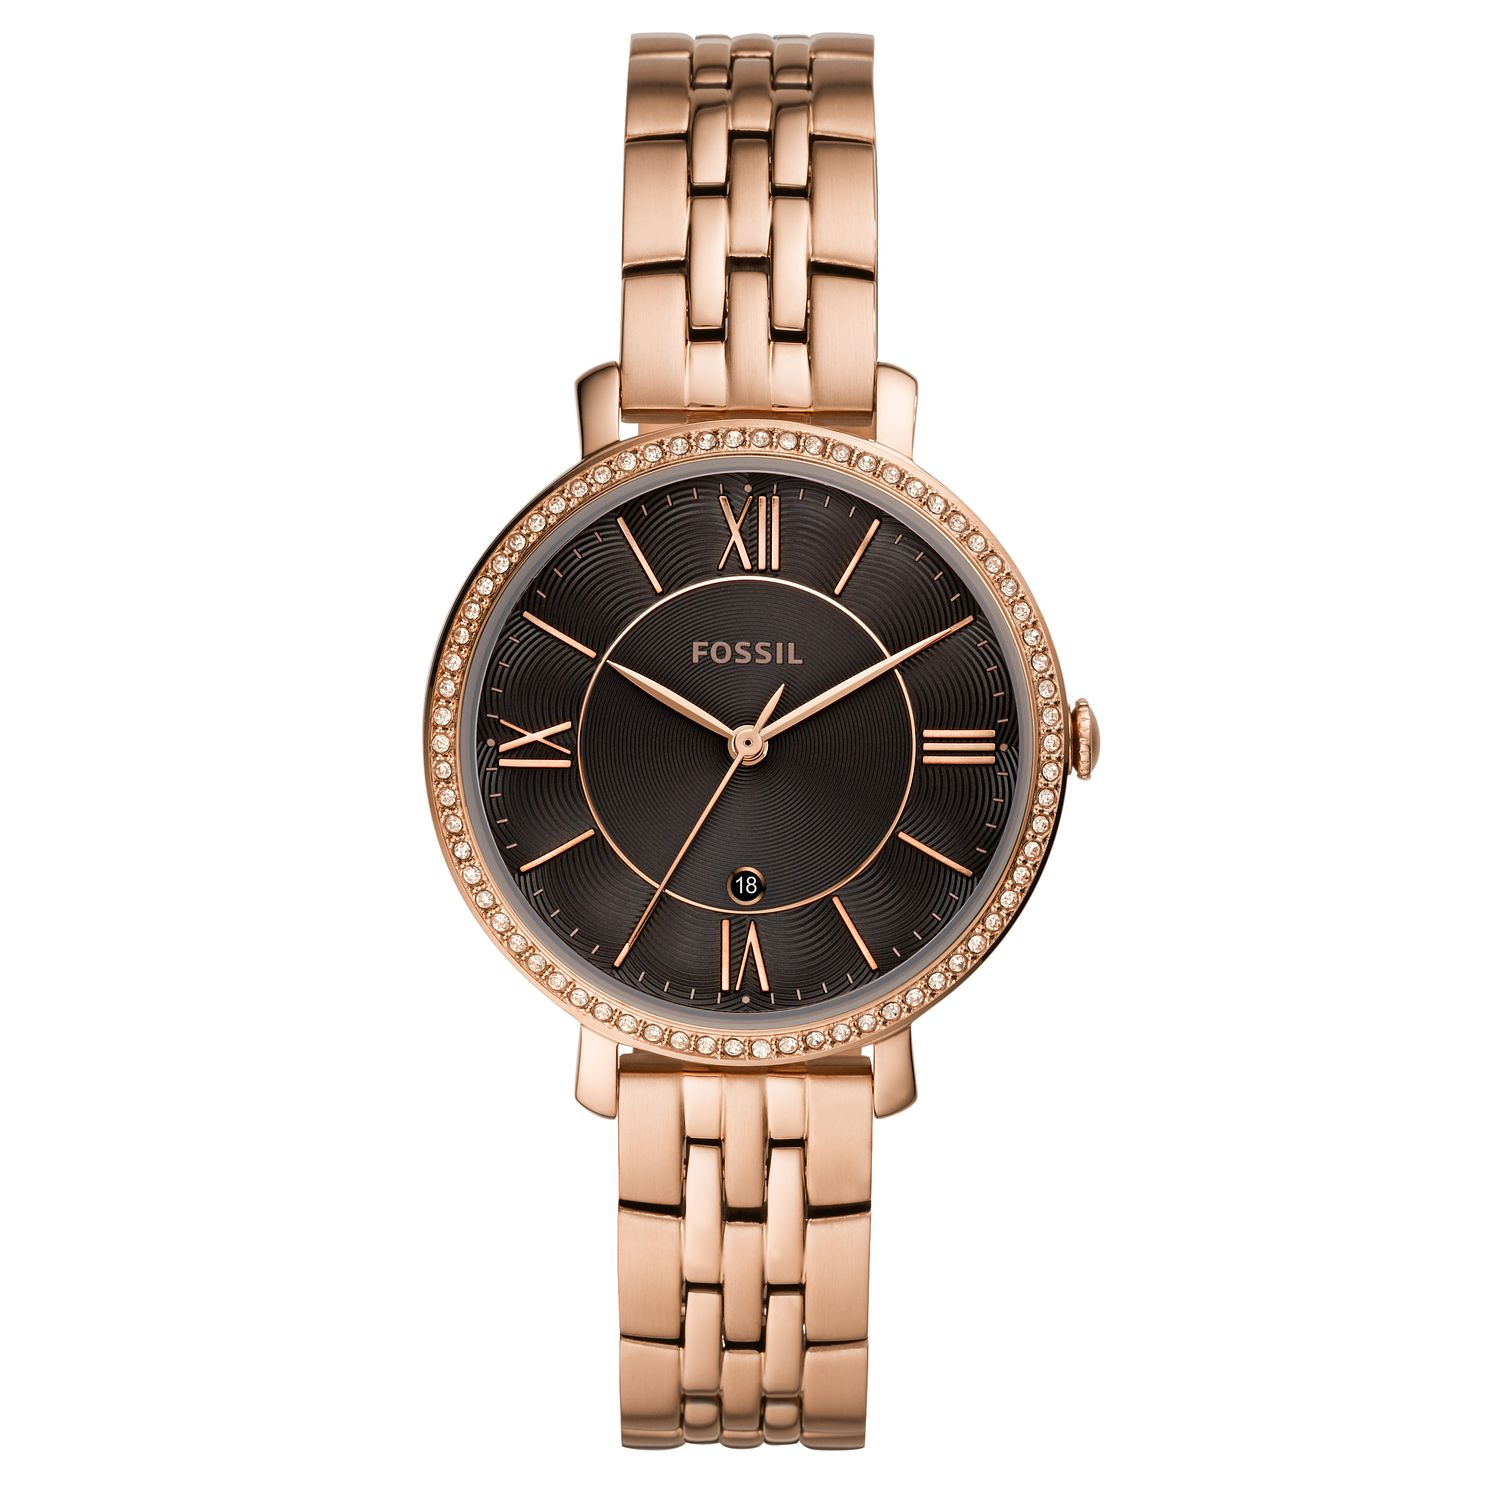 Fossil Jacqueline Ladies' Rose Gold Tone Bracelet Watch - Product number 3484726